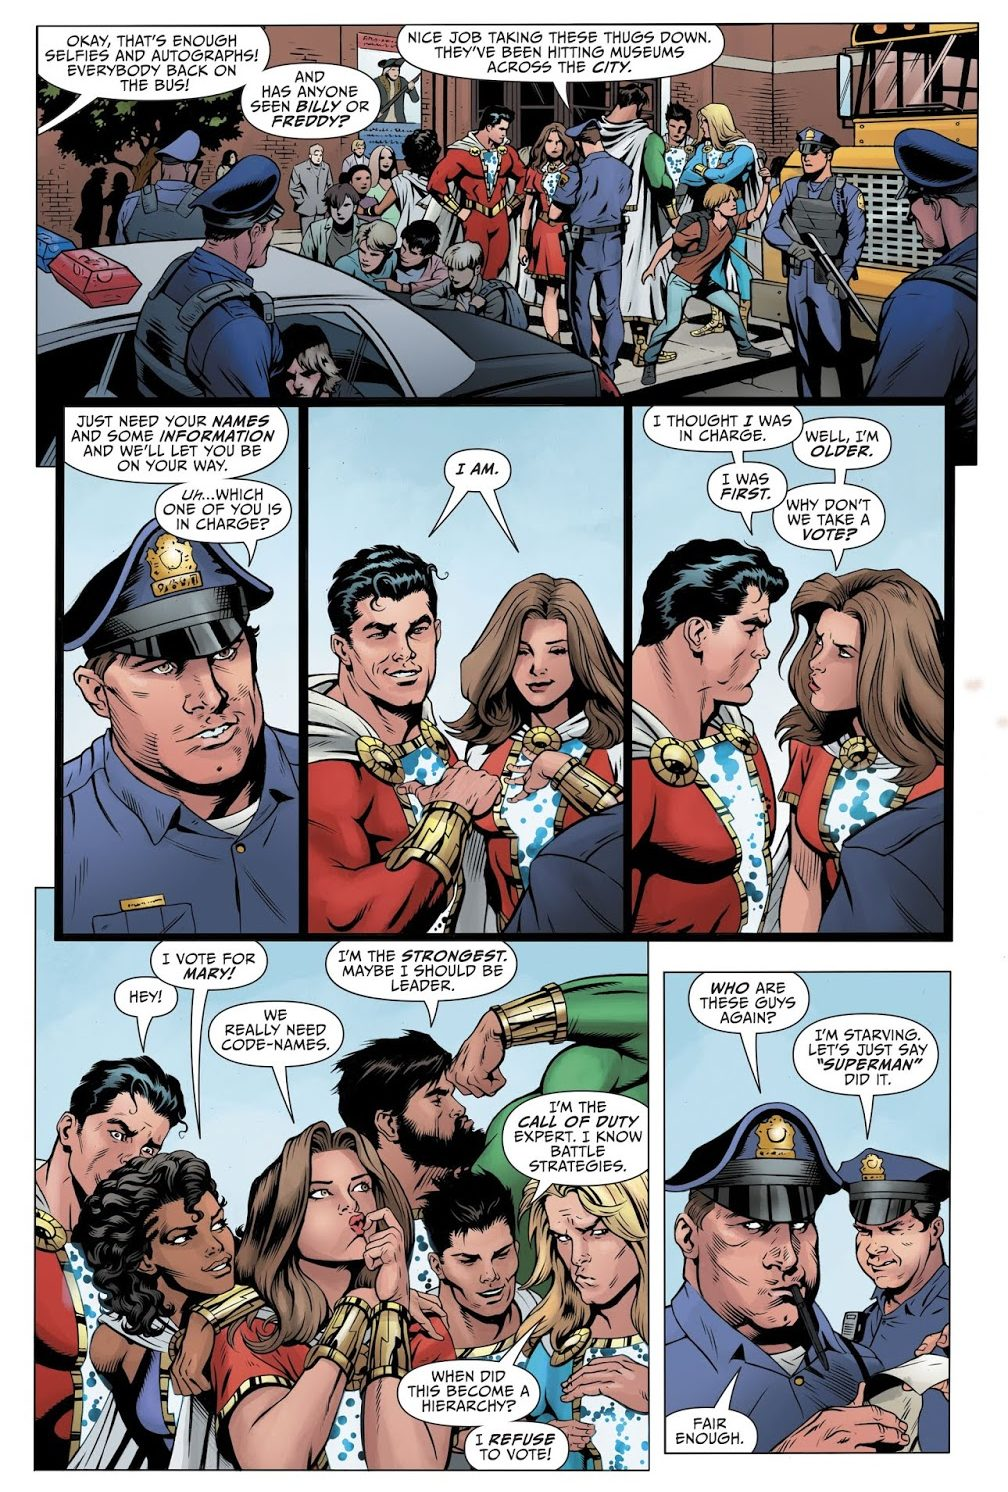 The Shazam Family (Shazam! Vol. 3 #1)